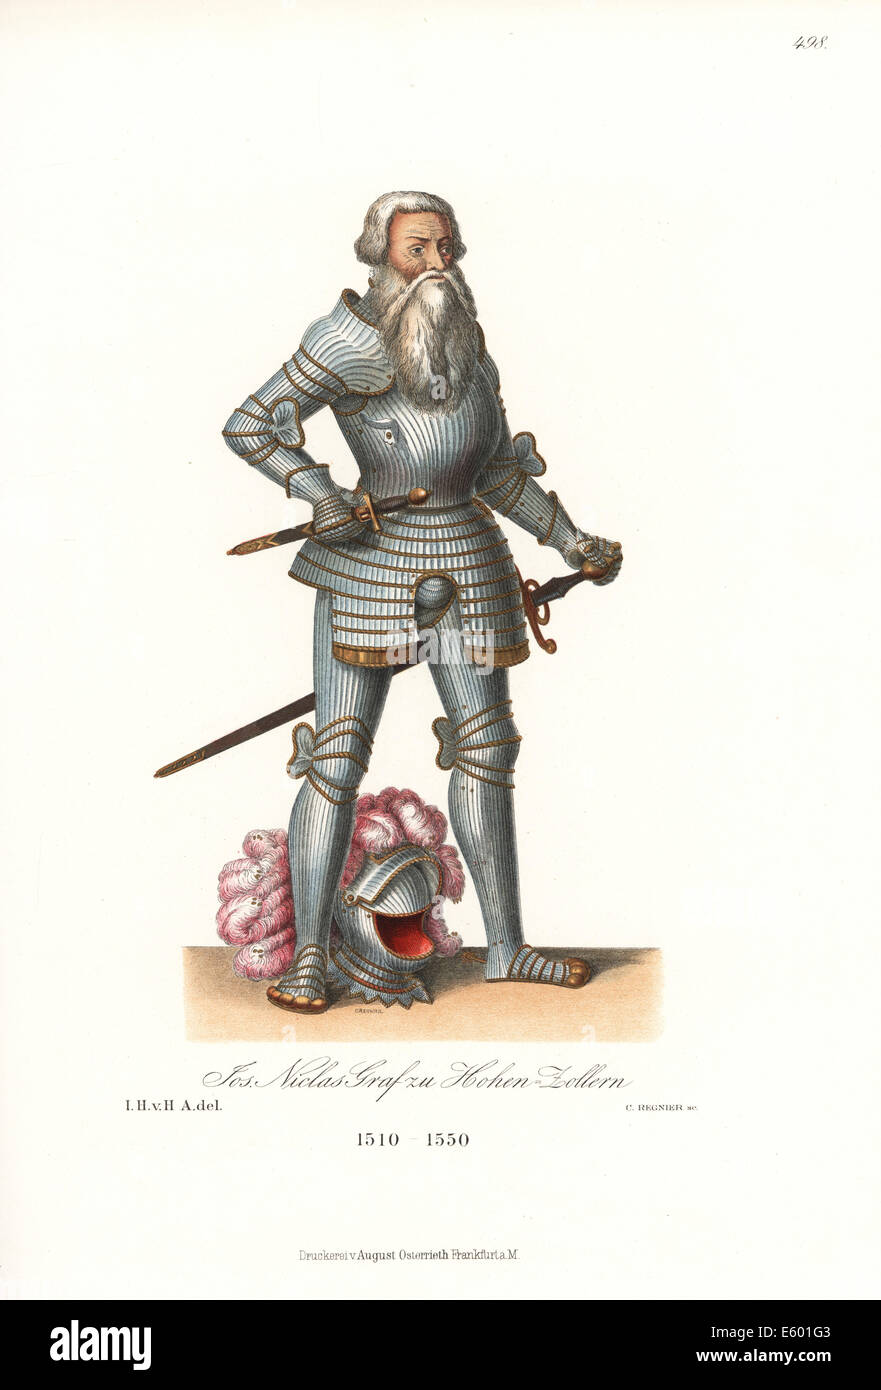 Johann or Jos Niklaus, Count of Hohenzollern, 1513-1558. - Stock Image